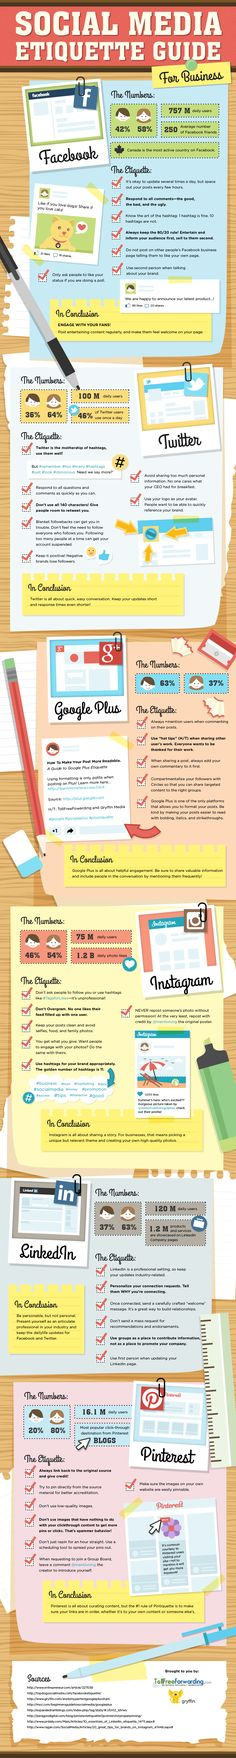 The article provides informative advice for how businesses should conduct proper social media etiquette when it comes to dealing with consumers, potentially other businesses, etc. In particular, it becomes relevant how much of an impact the information age has imposed on Business-to-Business and Business-to-Consumer relations. Therefore, the article suggests that as the information age continues, relationship between consumers and businesses has the potential to develop in a positive manner.